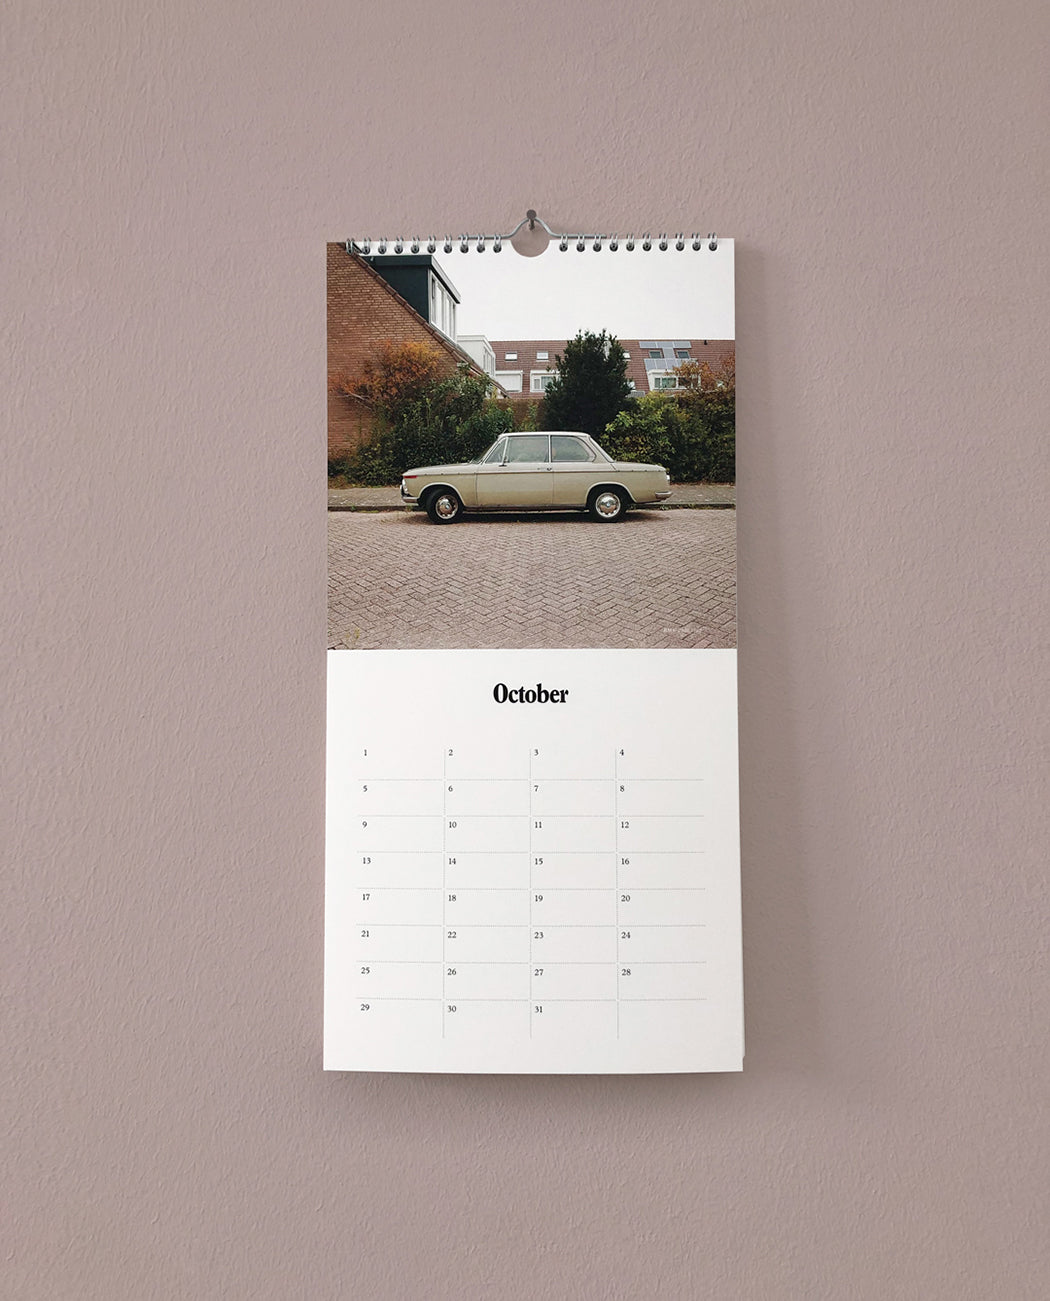 Boris Rijksen Dream Car Birthday Calendar